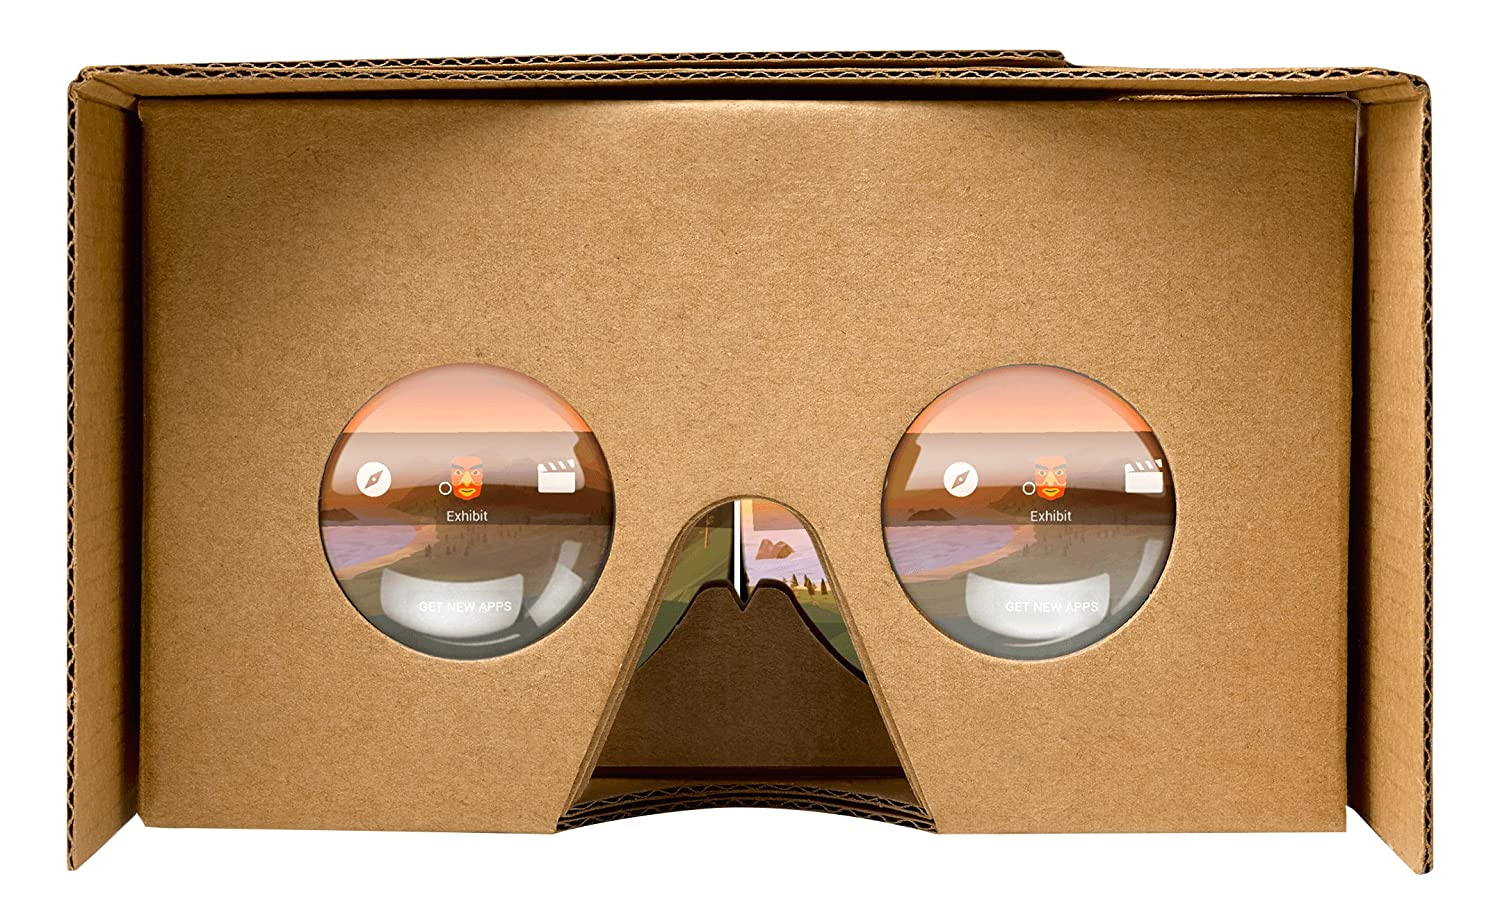 Google 87002823-01 Official Cardboard- 2 Pack, Brown TESSCO Wireless